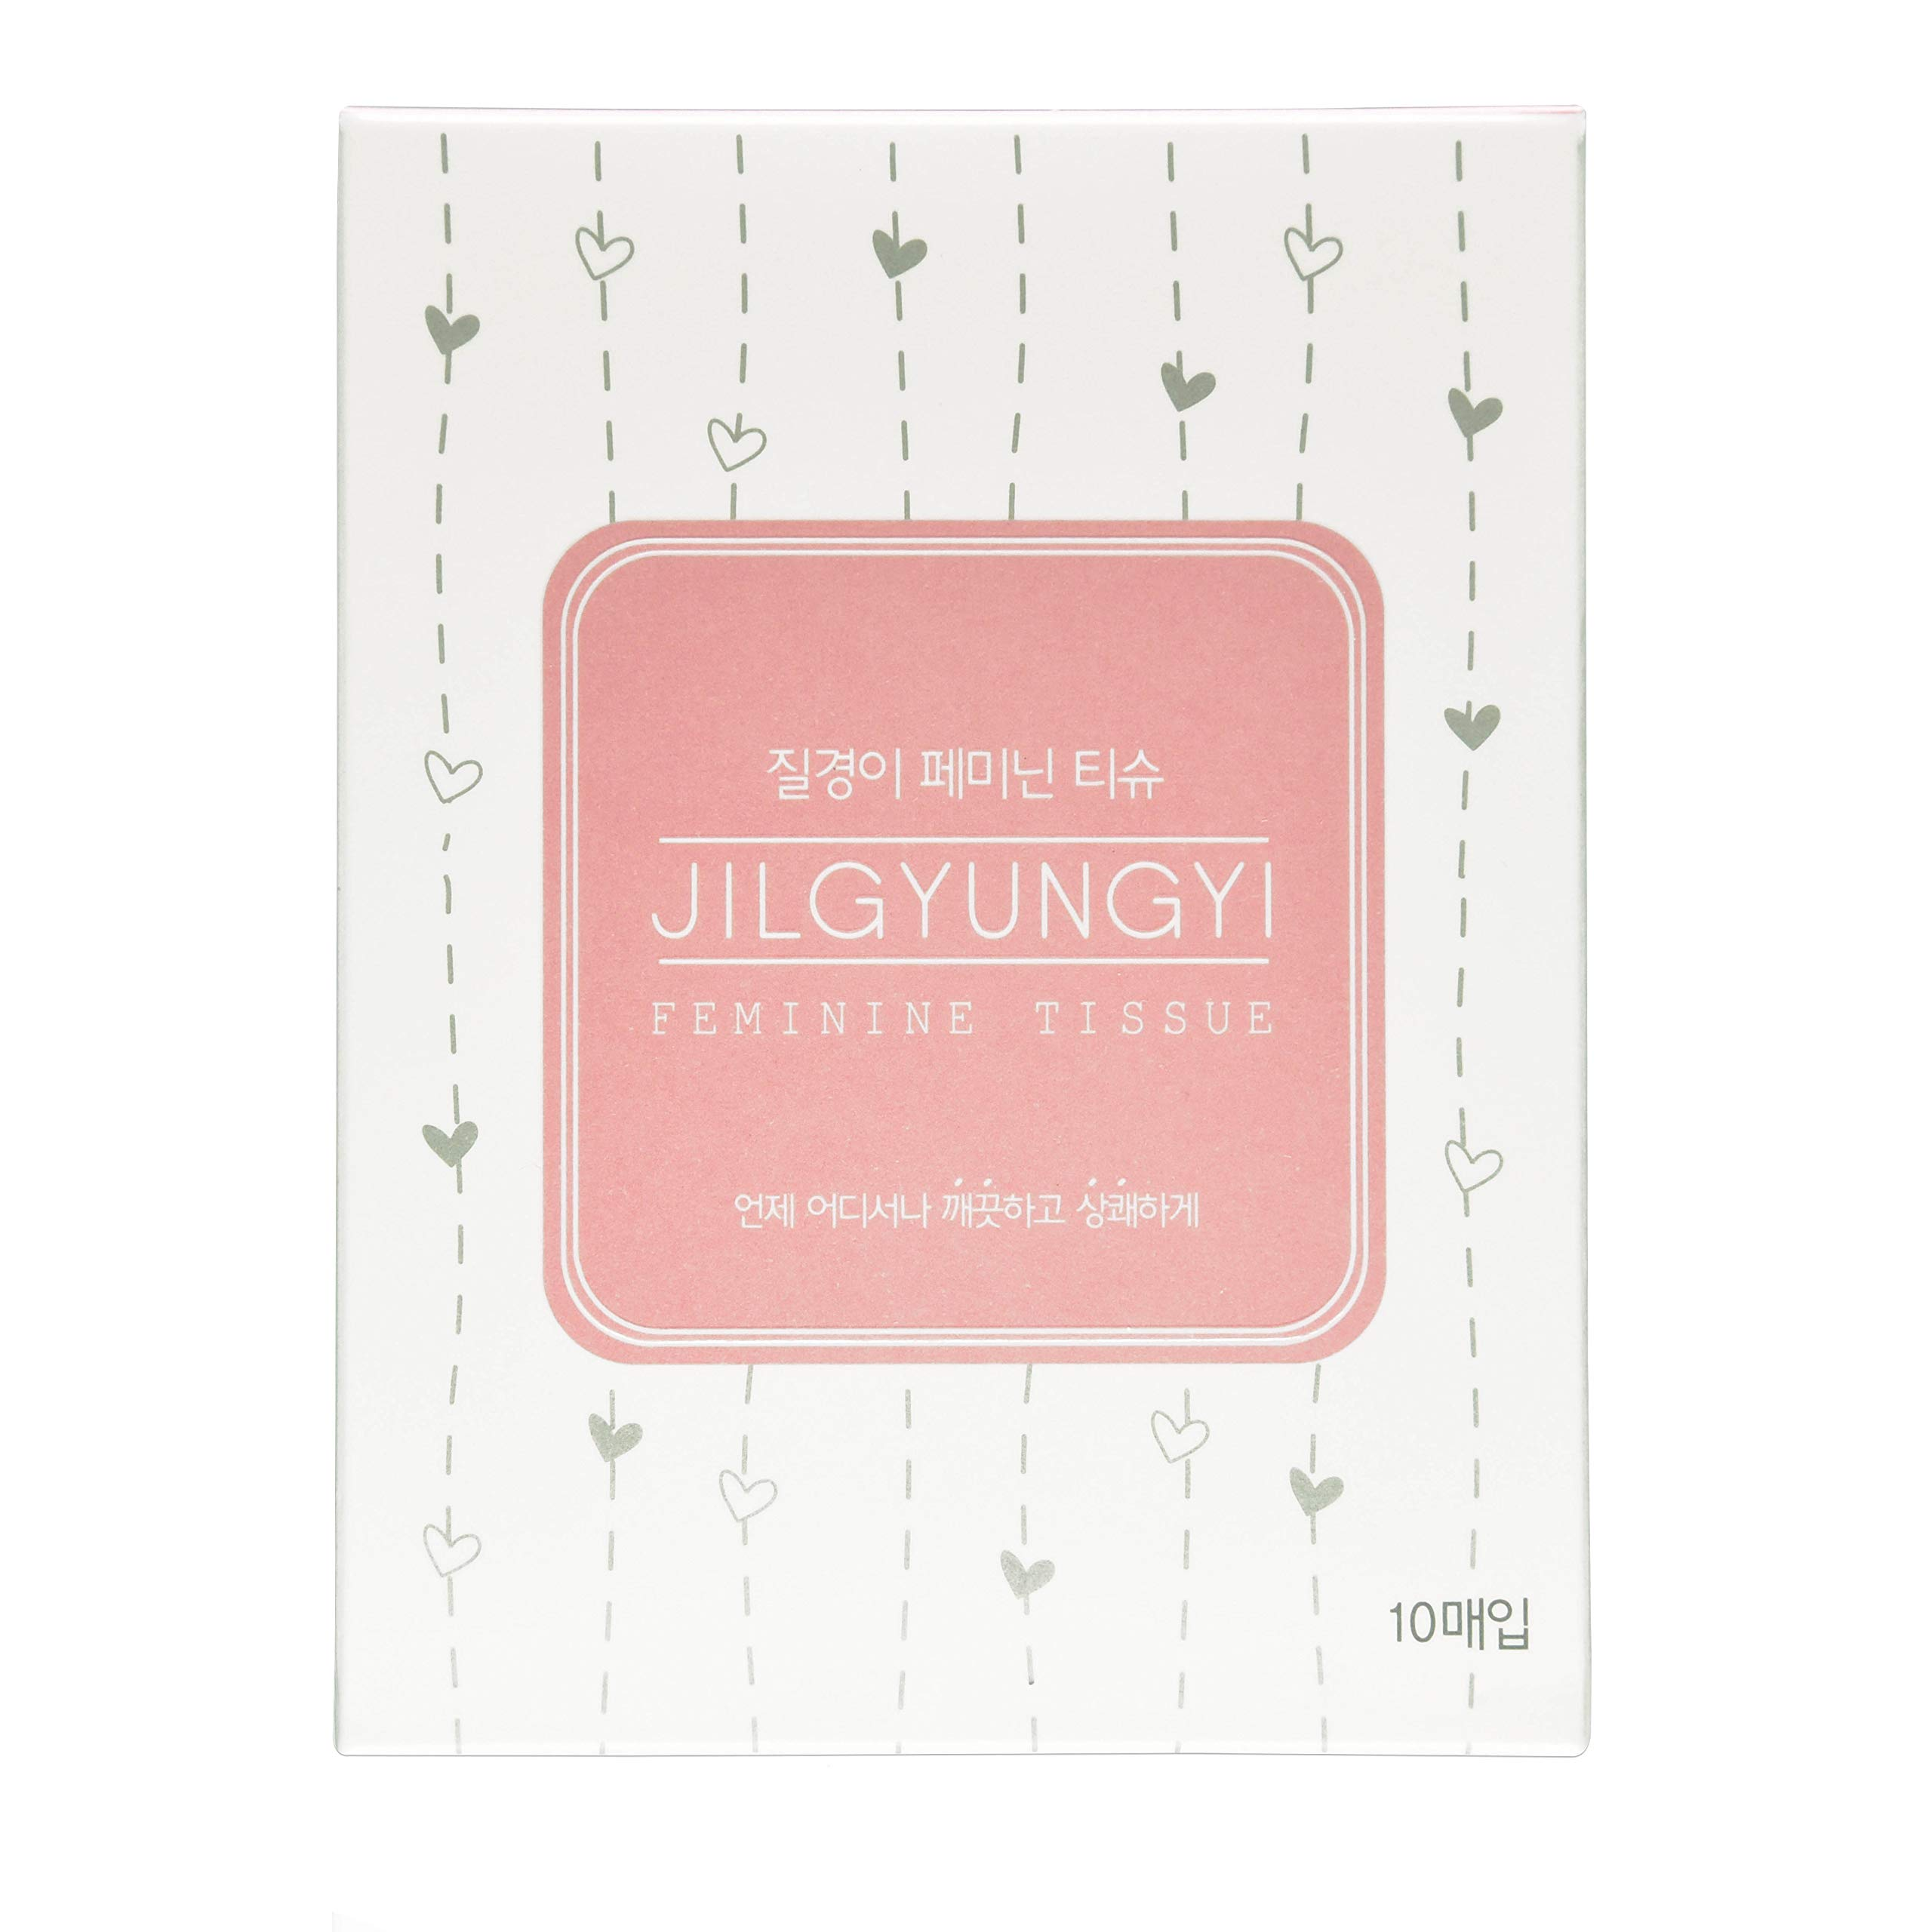 [JGY] Feminine TissueㅣIndividually Wrapped Pack of 10 (9g/1EA)ㅣWipe out Vaginal Area CleanㅣHelp Moisture The SkinㅣPortable Feminine WipesㅣIntimate Wipes with Lotus Extract